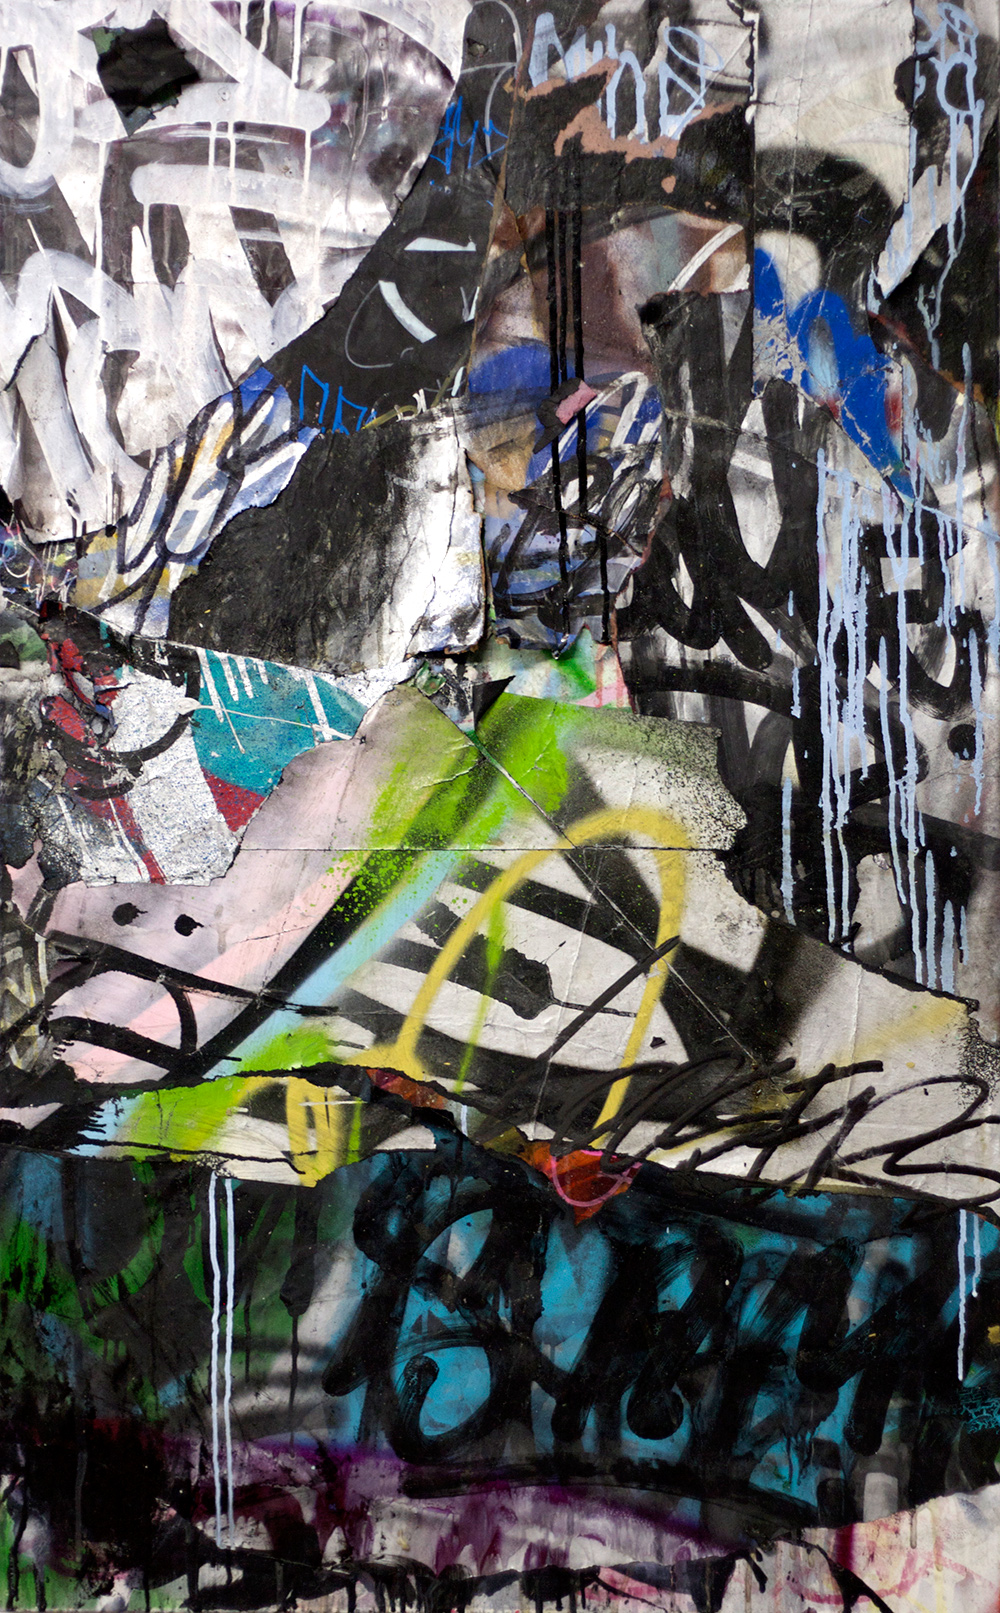 Negative Creep, Mixed Media on Canvas, 30in x 48in  ©2013 Mint&Serf